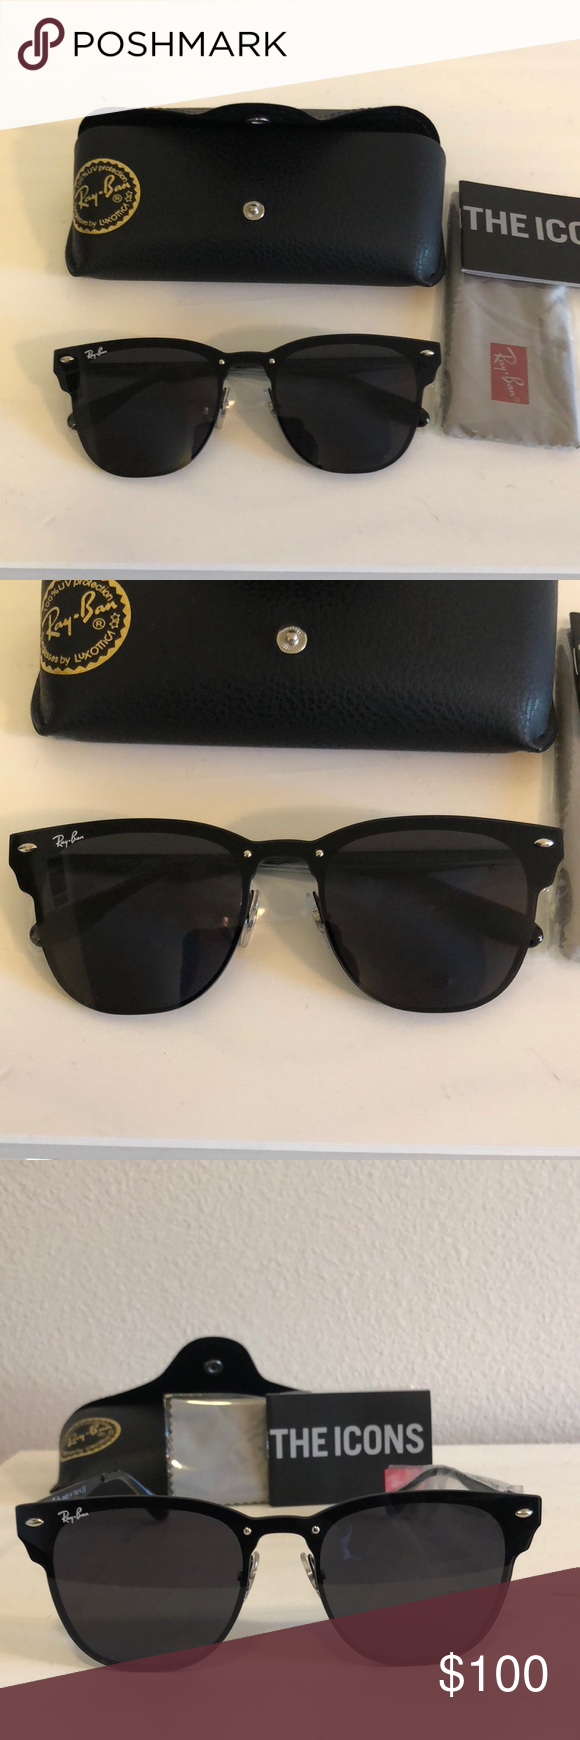 4ac97996a1 Ray-Ban Blaze Clubmaster RB3576-N 153 9A Standard size. All Black ...